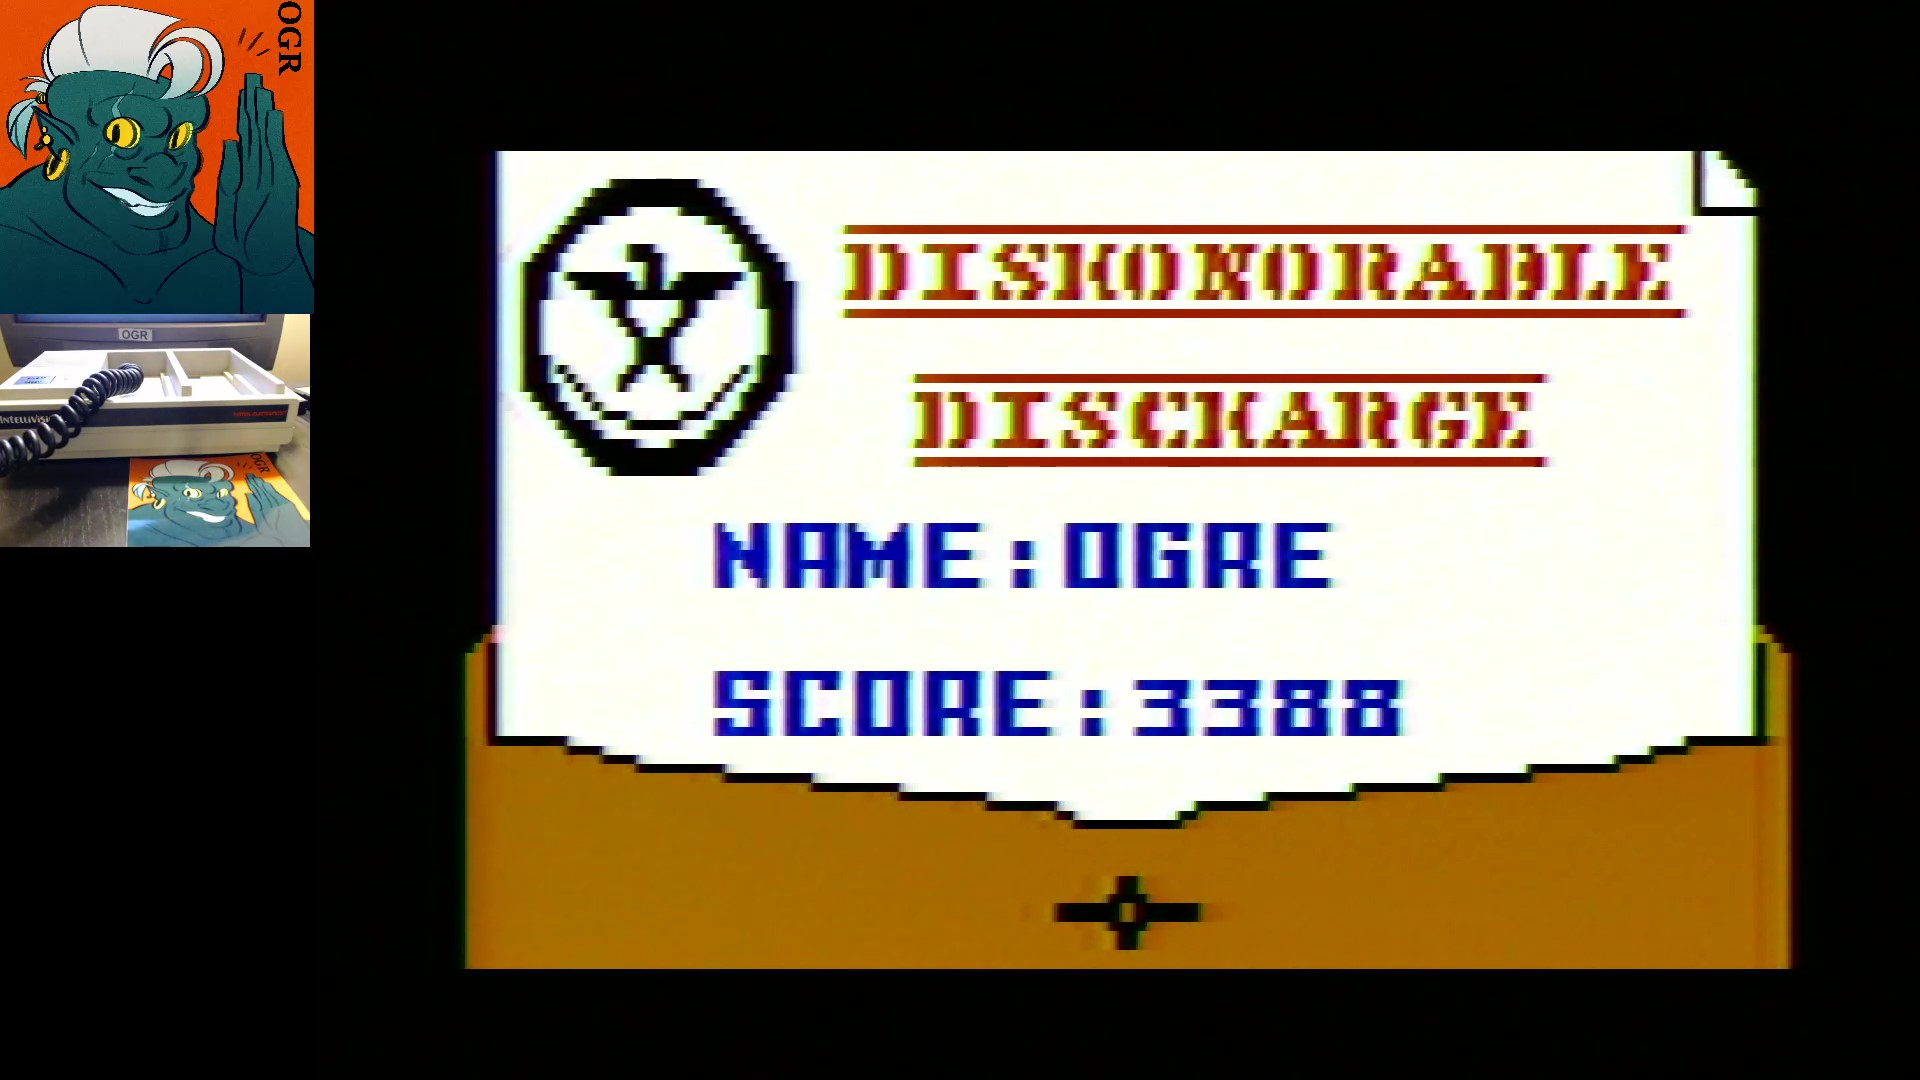 AwesomeOgre: Desert Bus: Deserter Bus (Intellivision) 3,388 points on 2020-02-10 21:11:08